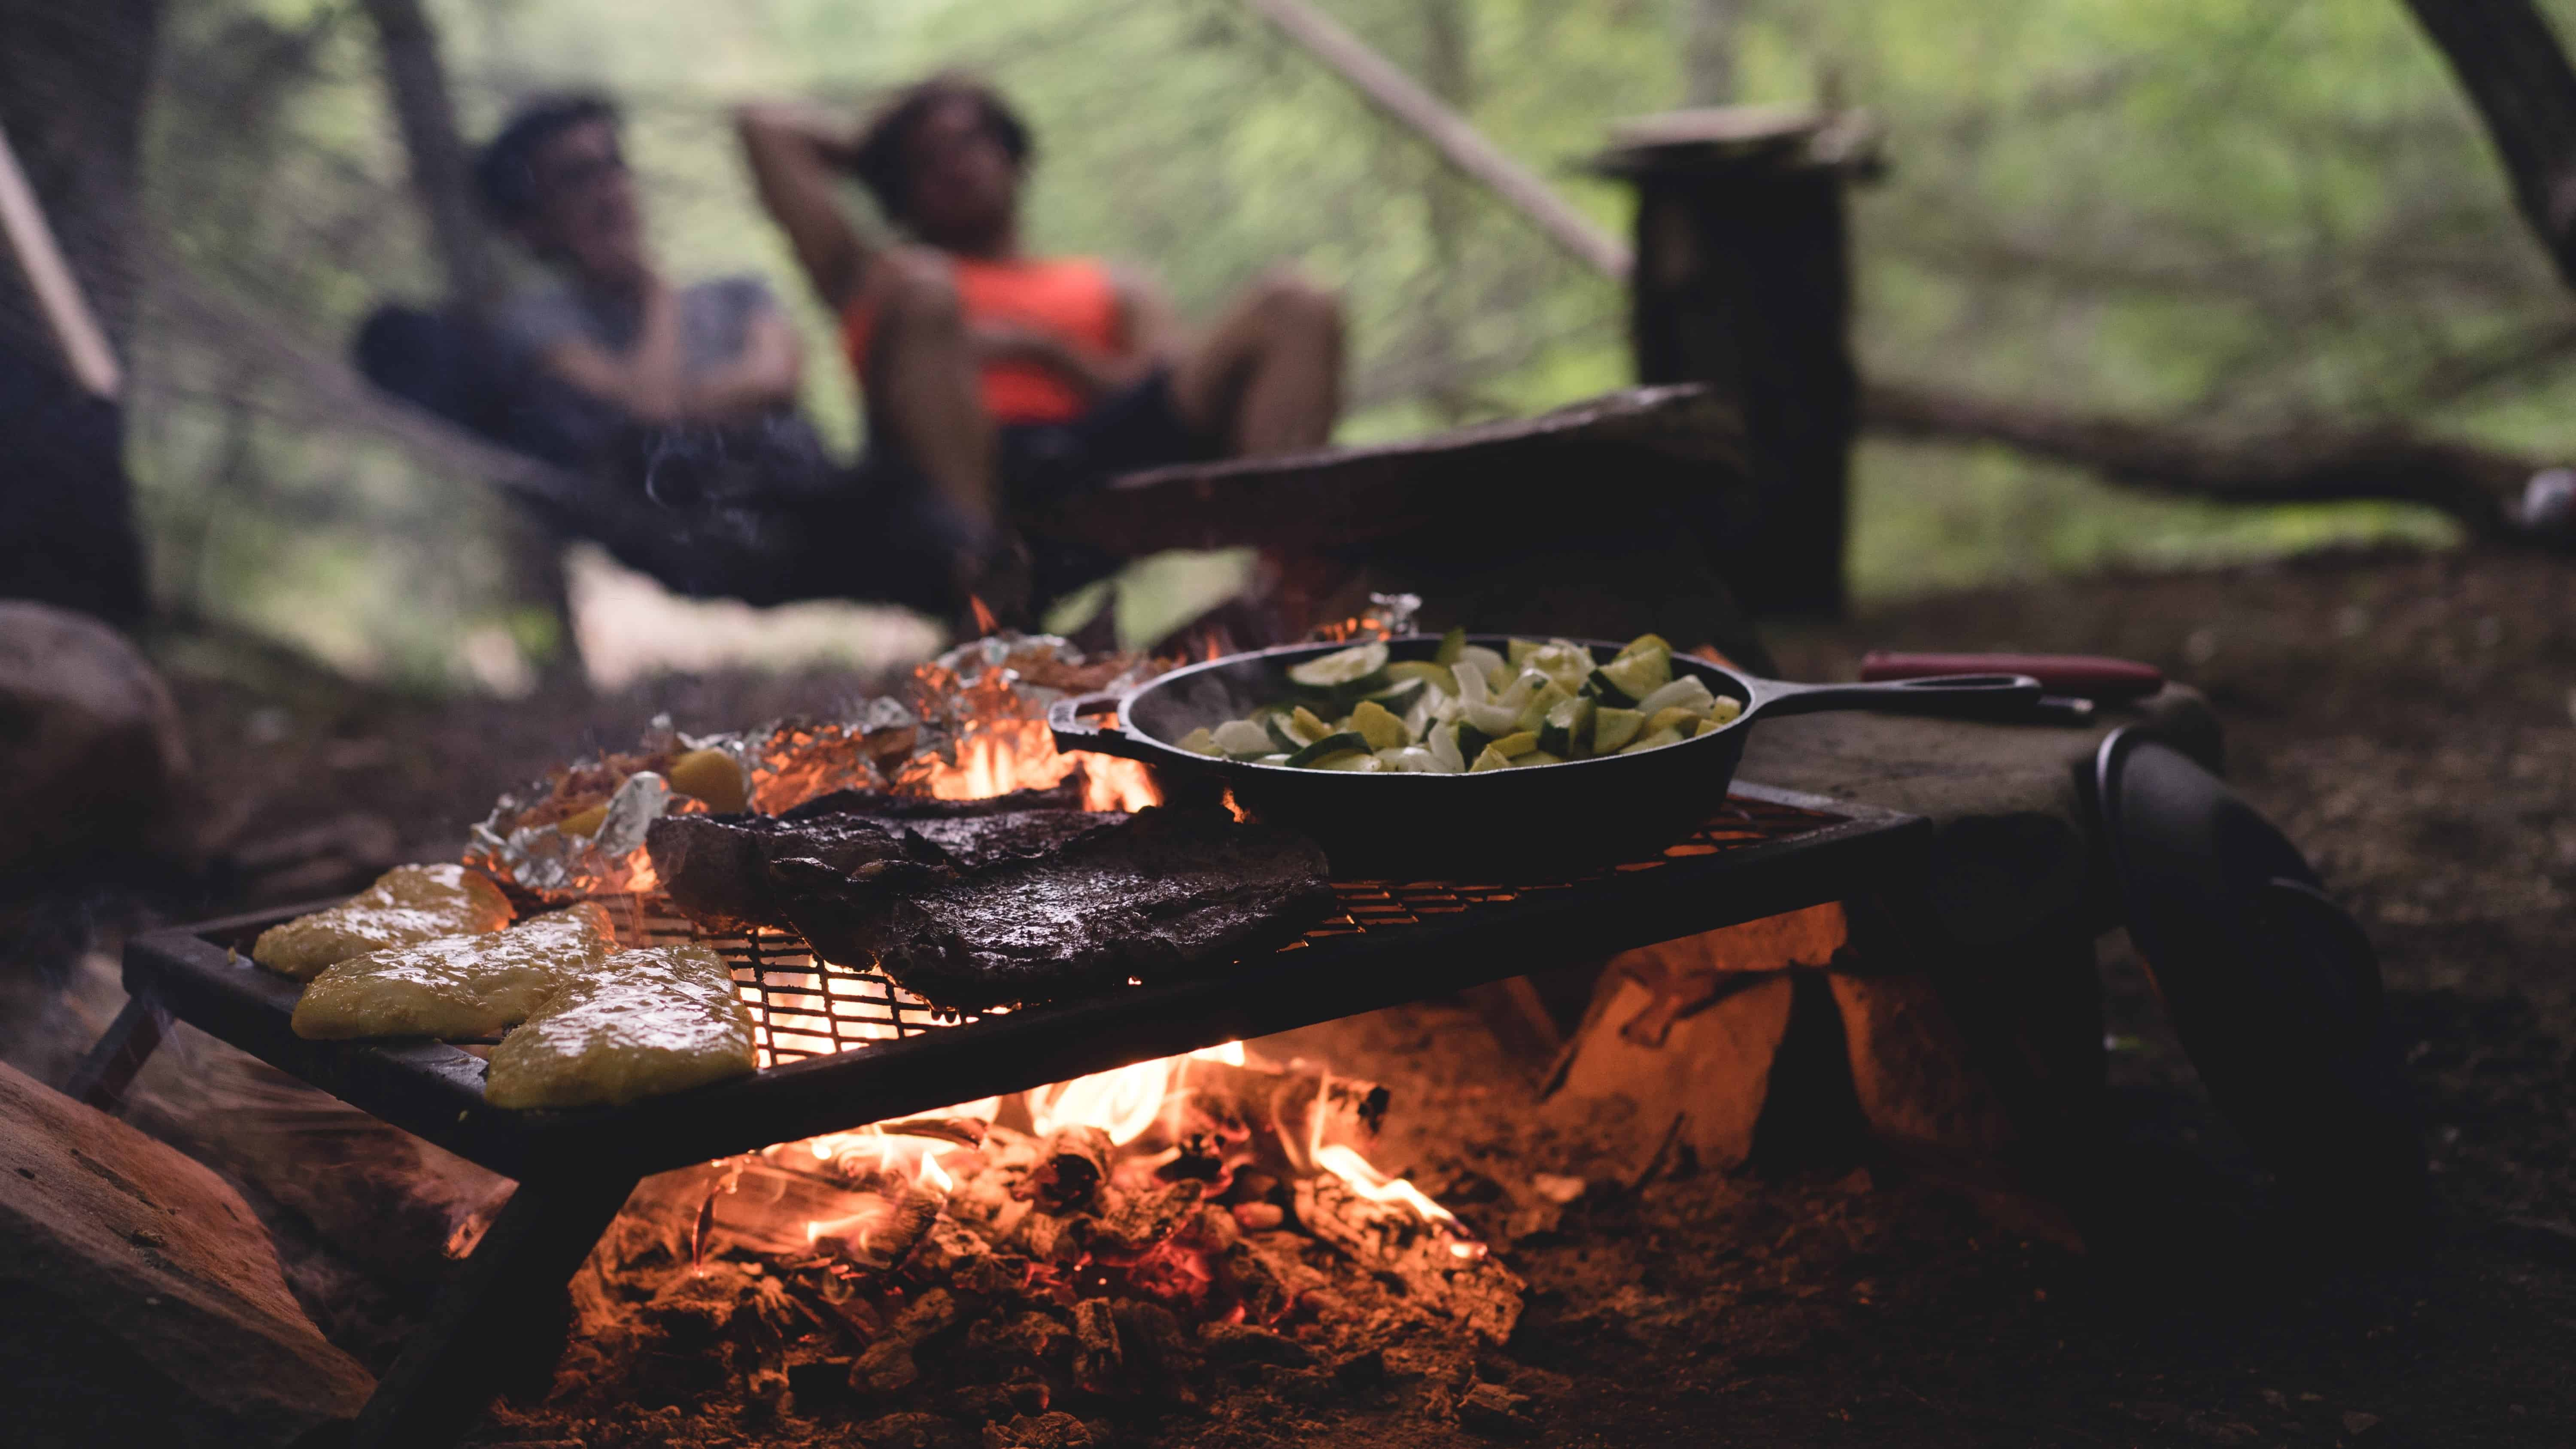 small grill with pans and foods over a campfire with blurry people sat in the distance